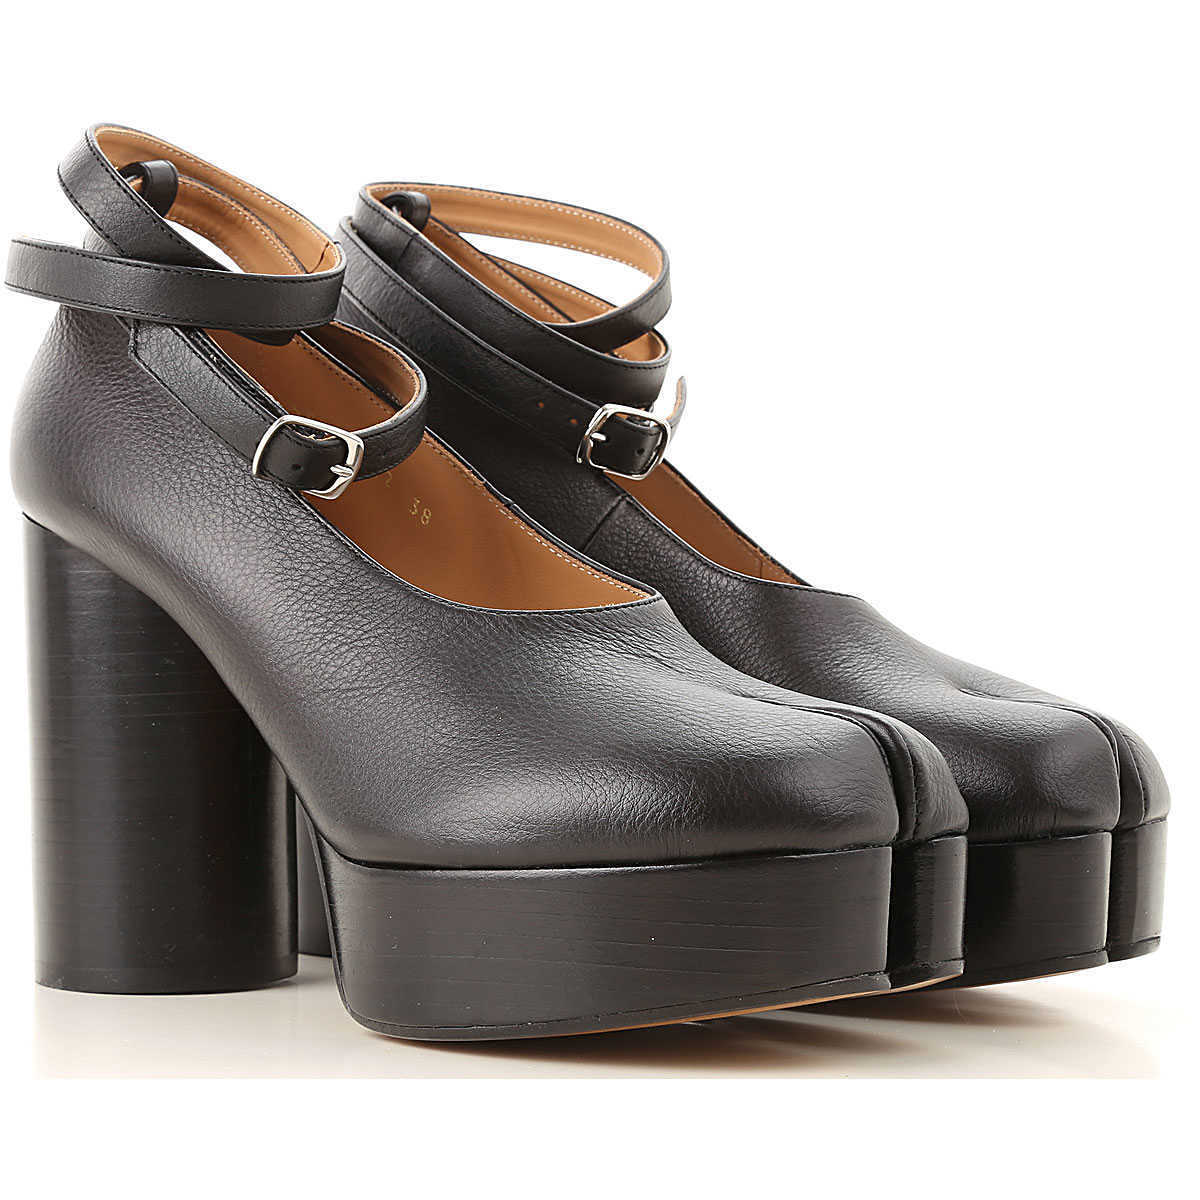 Maison Martin Margiela Wedges for Women On Sale Black DK - GOOFASH - Womens HOUSE SHOES